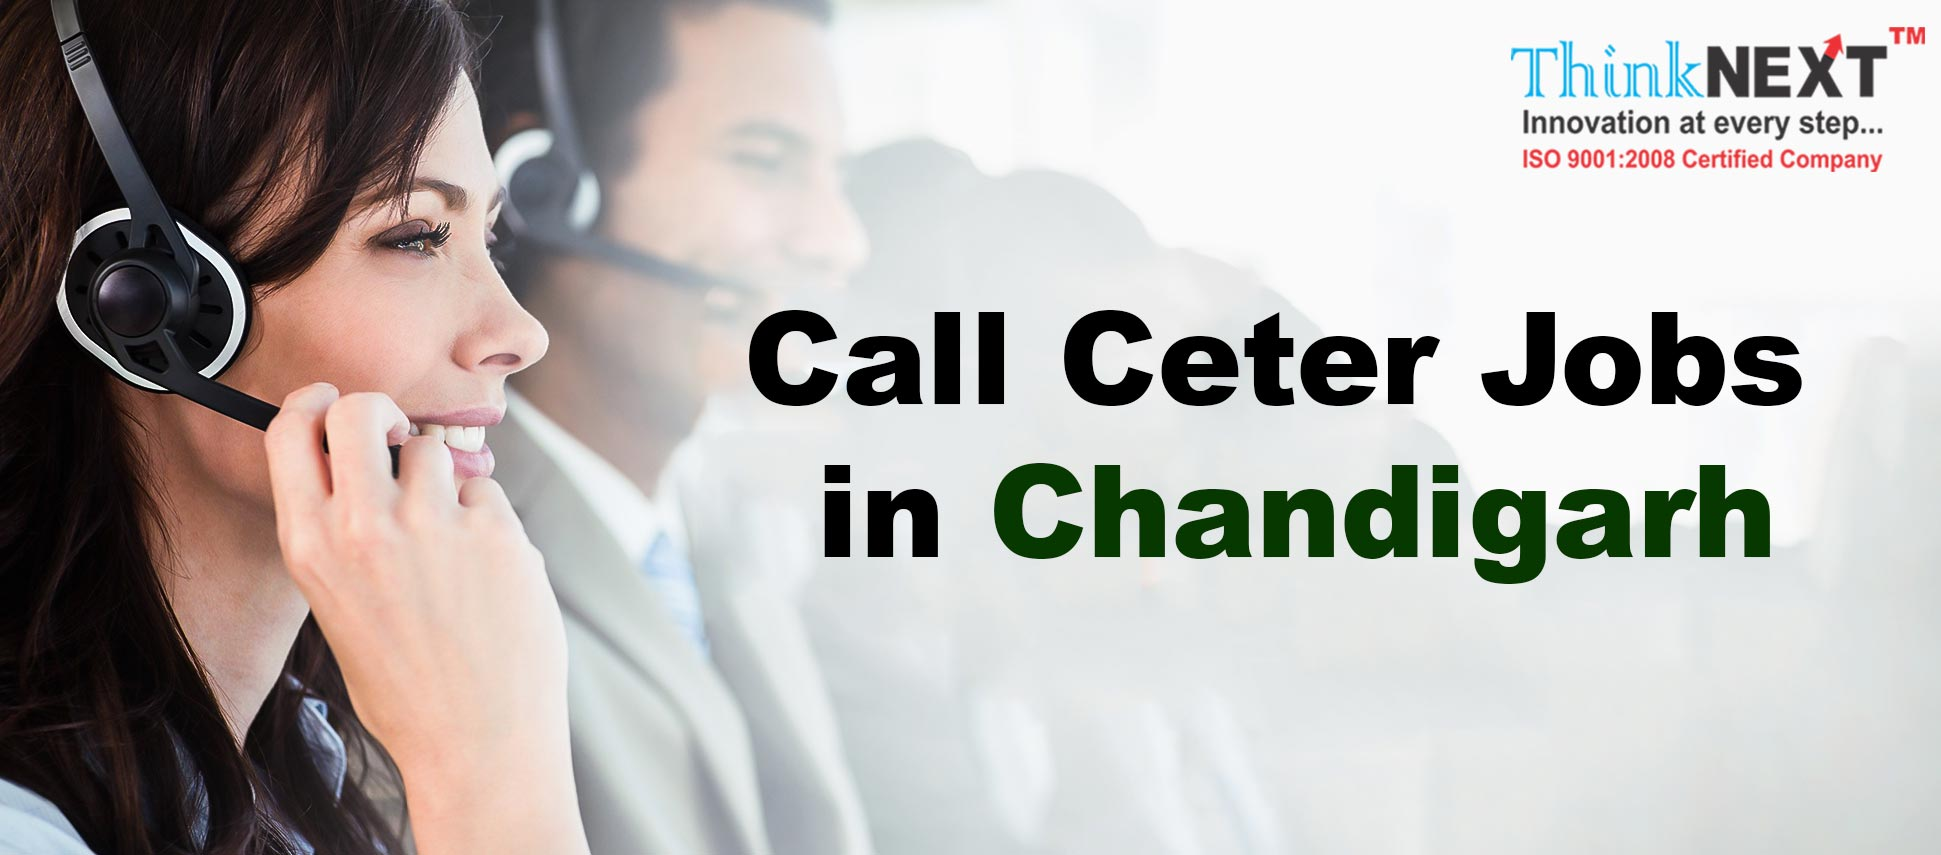 Call Center Jobs in Chandigarh